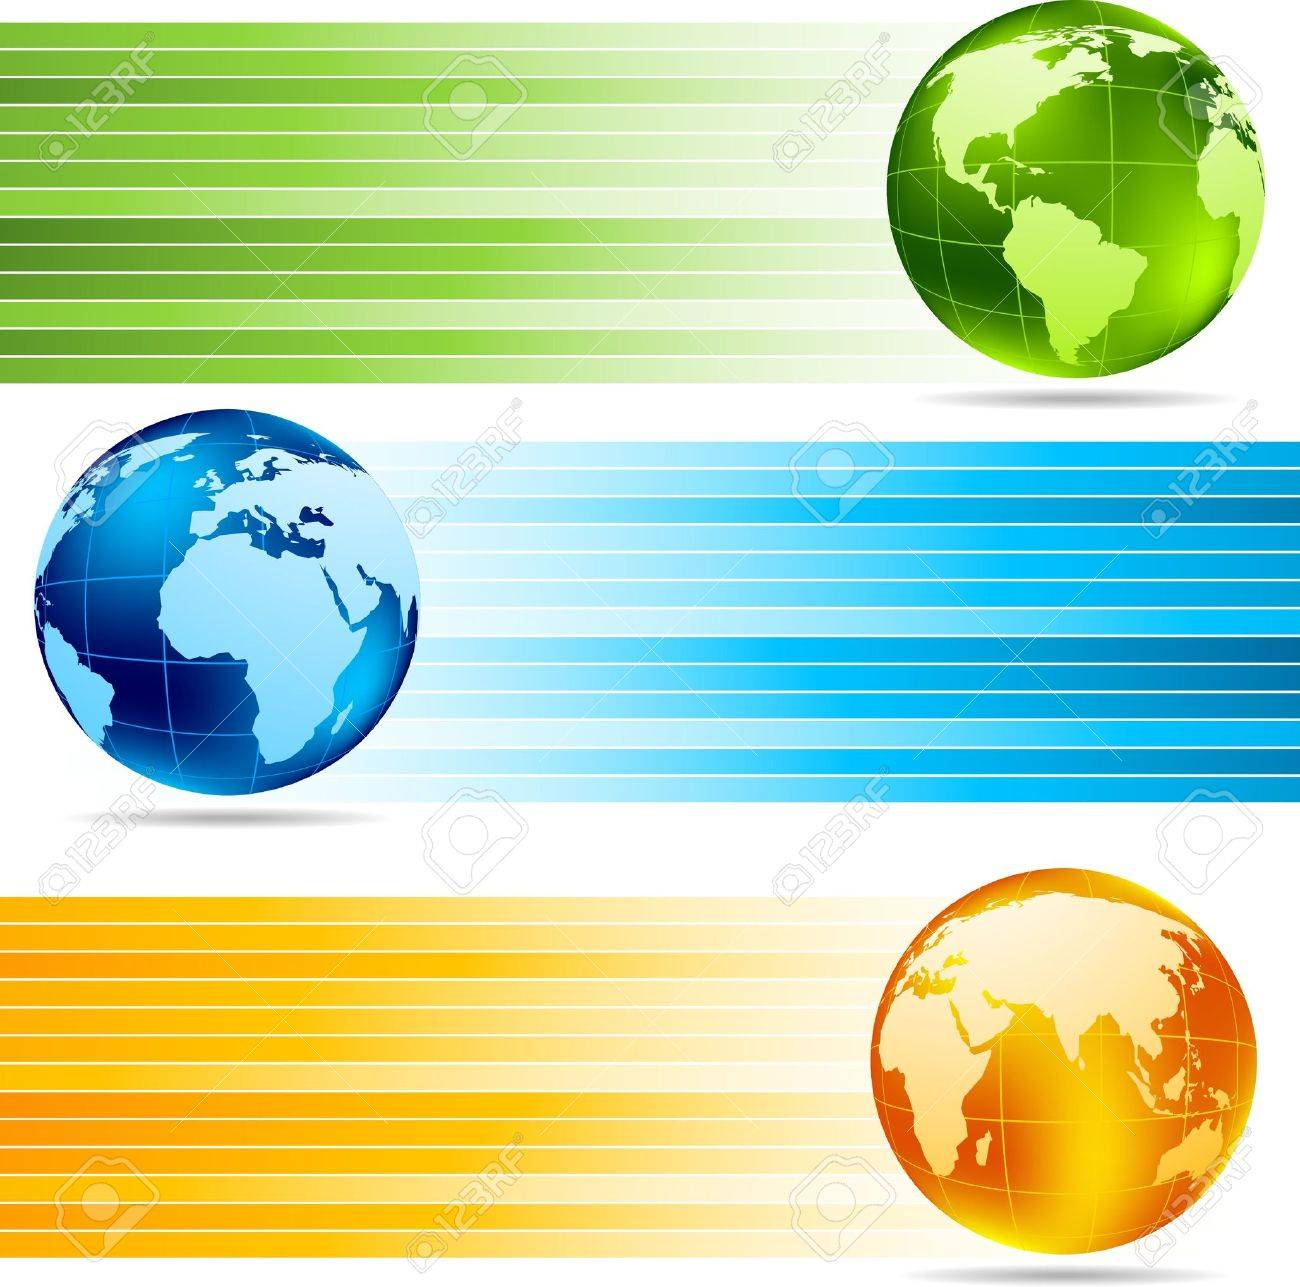 Collection of banners with globes Stock Photo - 8838594